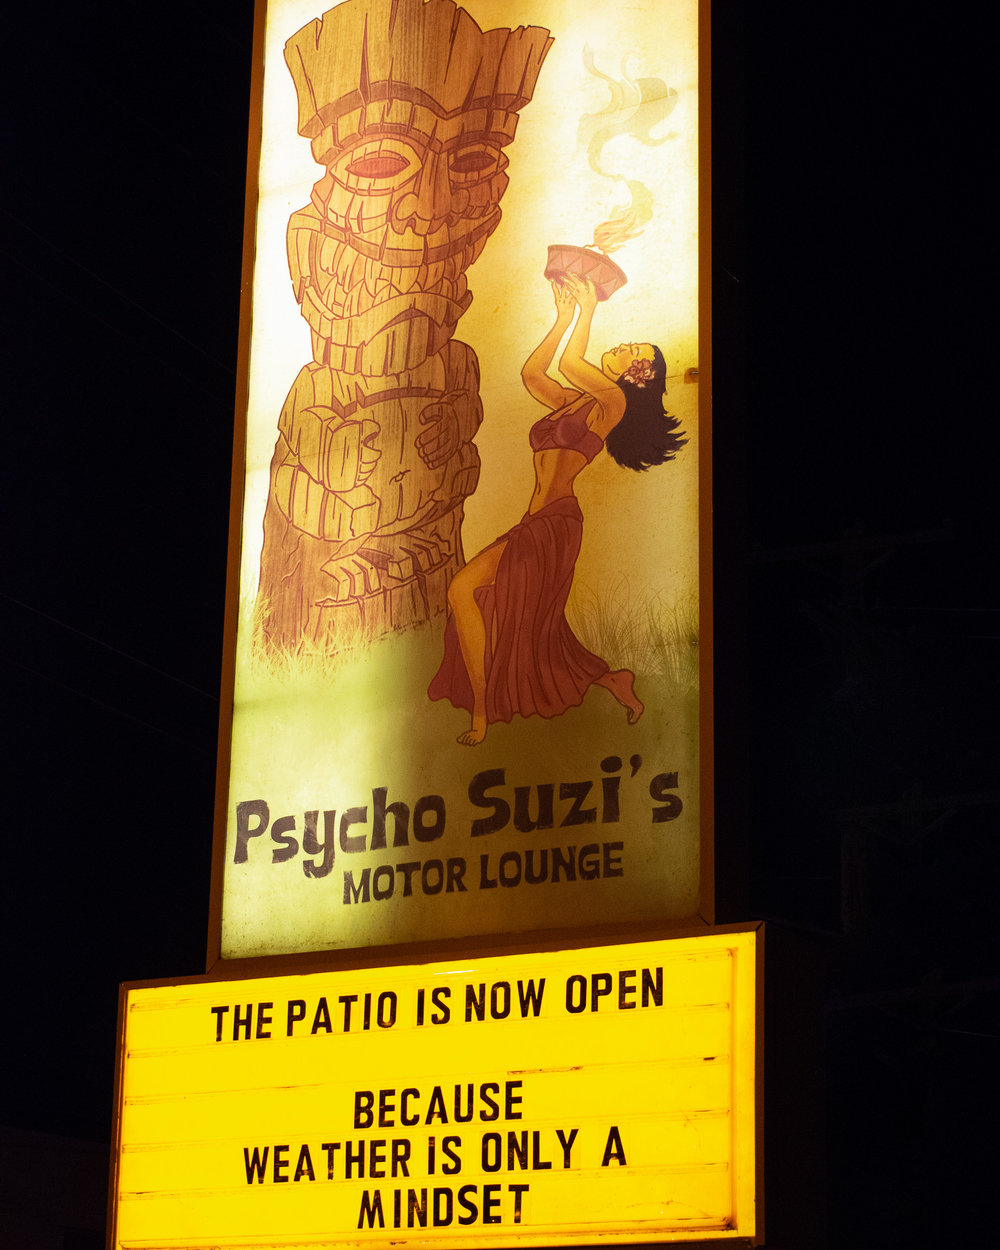 uprooted-traveler-psycho-suzis-minneapolis-st-paul-tiki-sign-motor-lounge.jpg